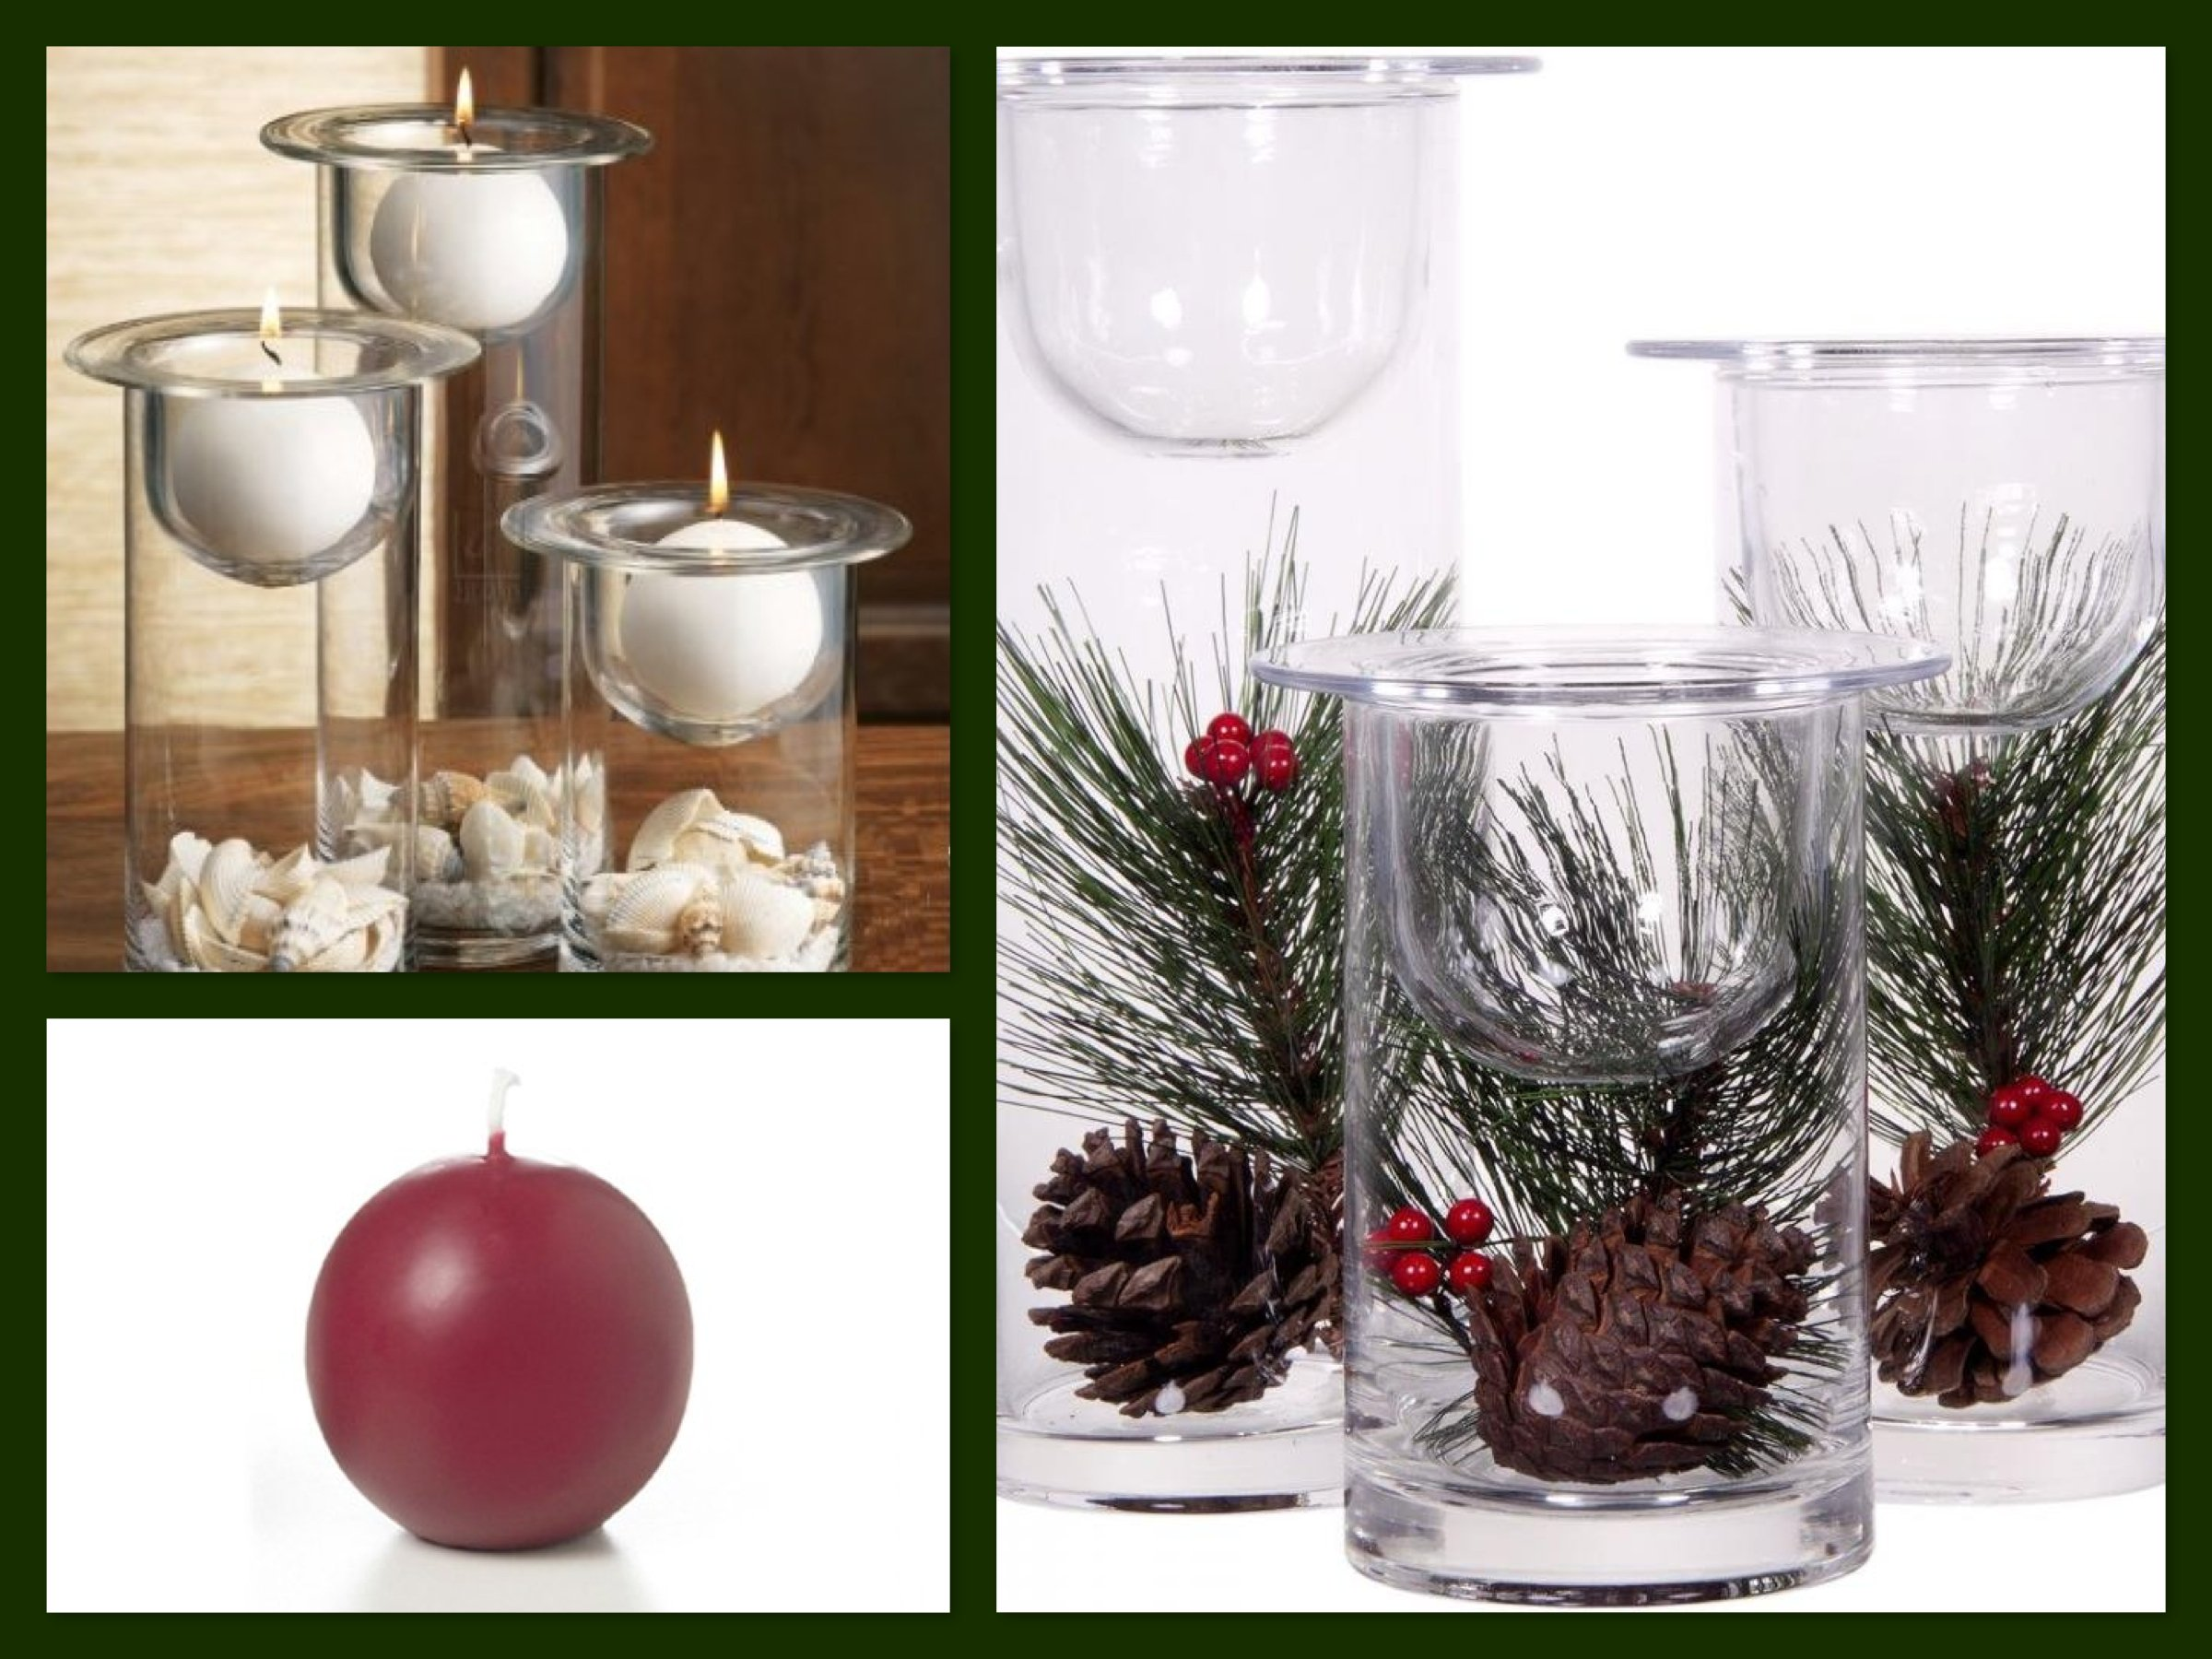 christmas centerpiece ideas glass hurricanes candle holders filled with holiday flowers - Christmas Candle Holders Decorations